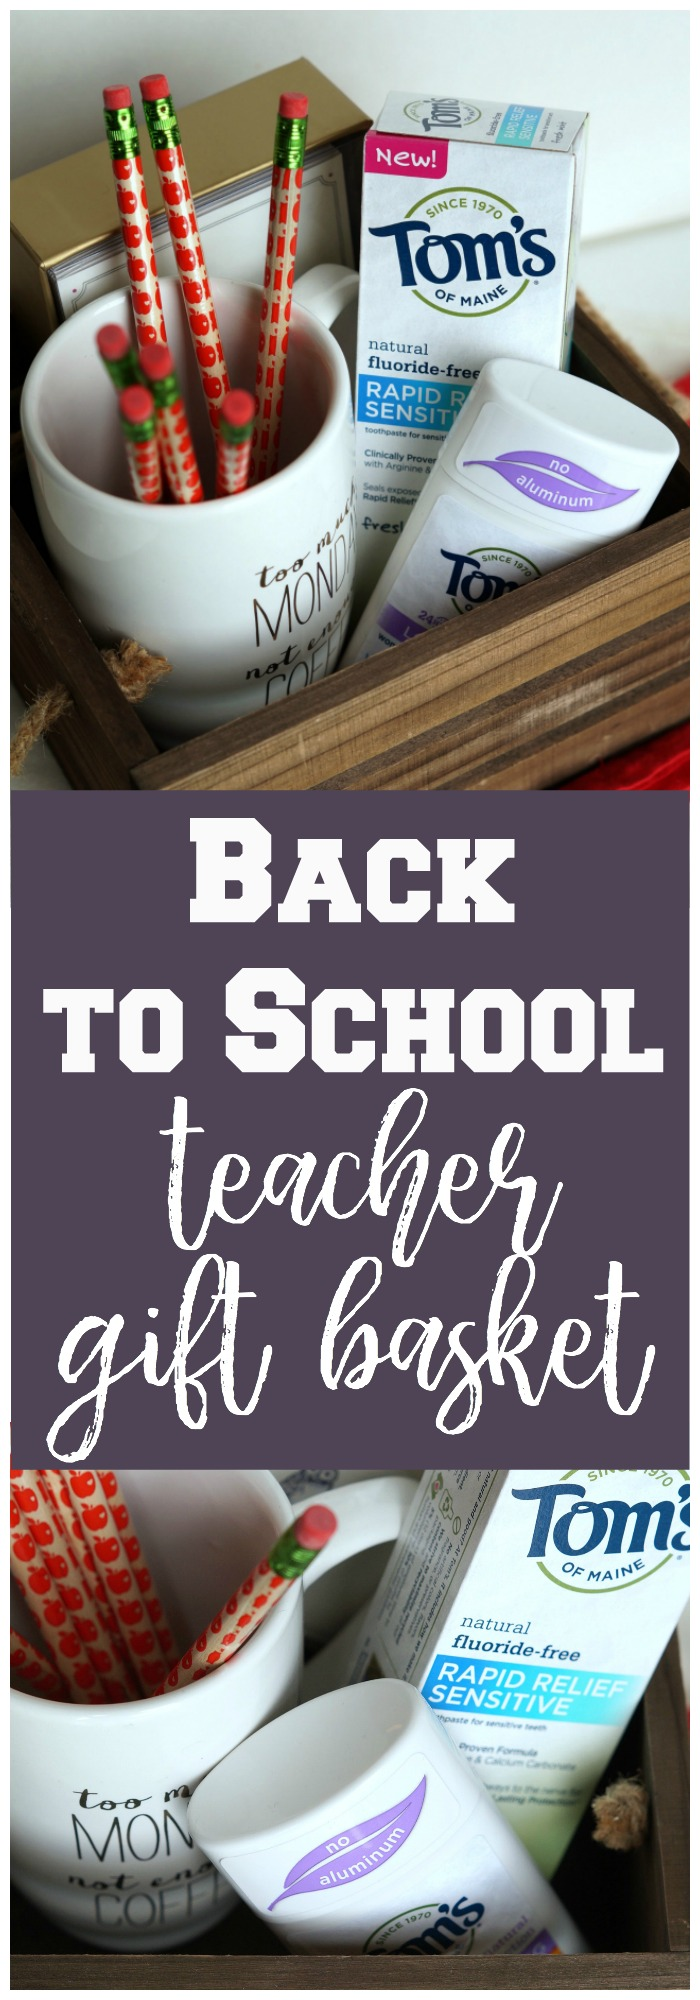 Are you ready for your kids to head back to school? Make this back to school teacher gift basket with useful items teachers will enjoy!